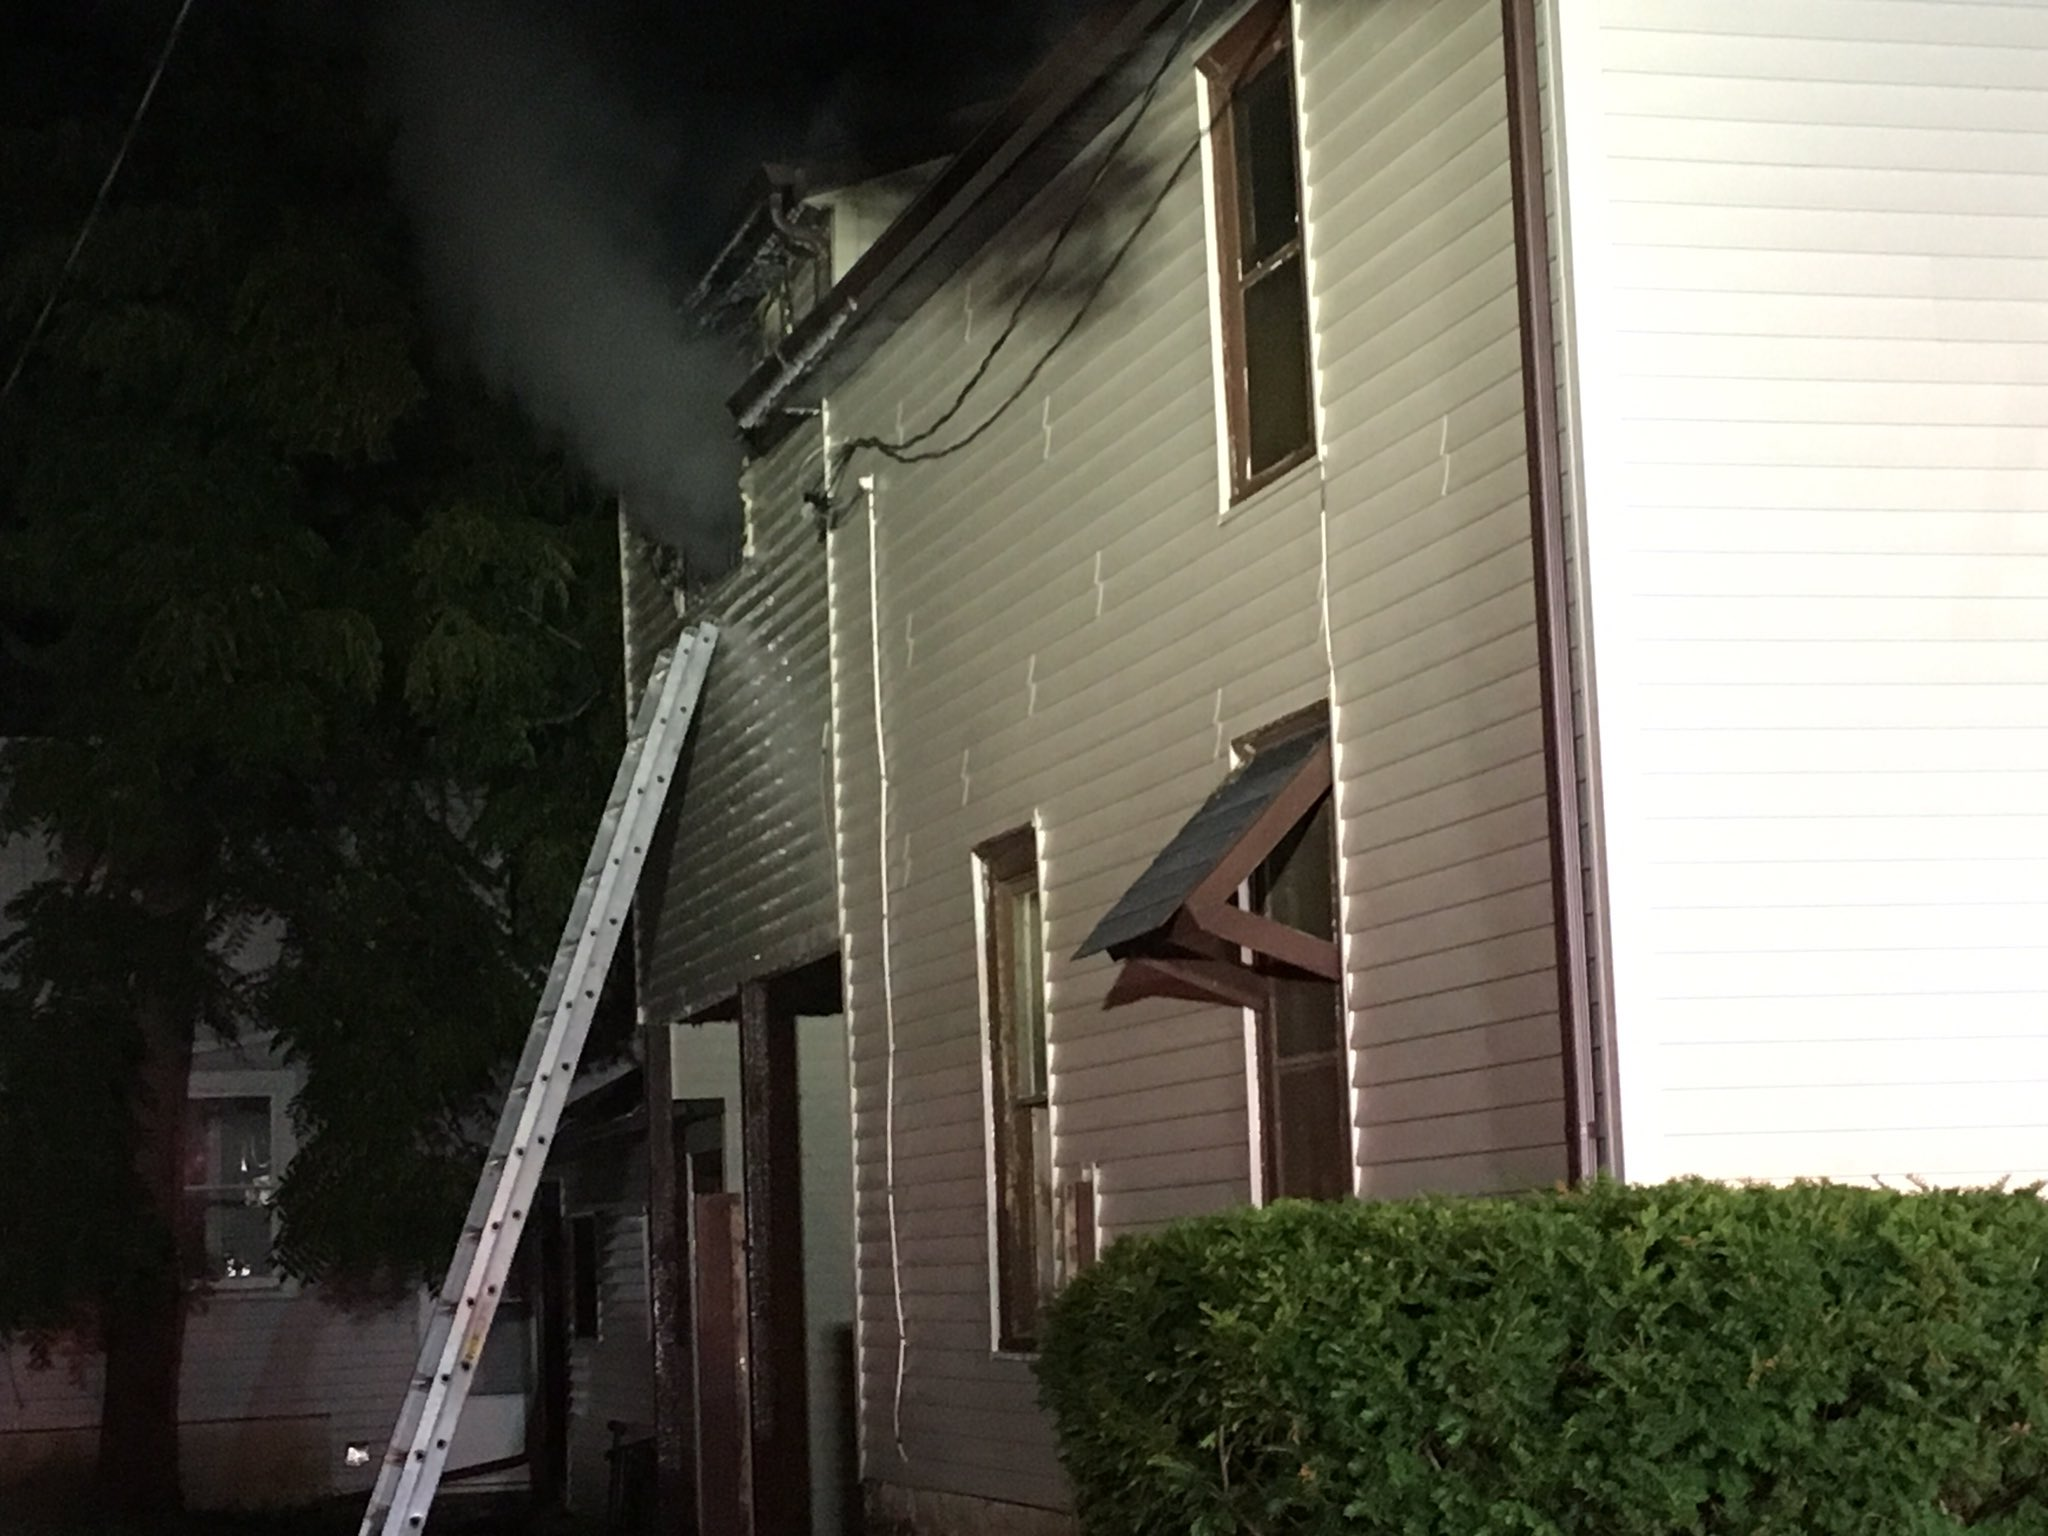 Two hurt in Fond du Lac house fire